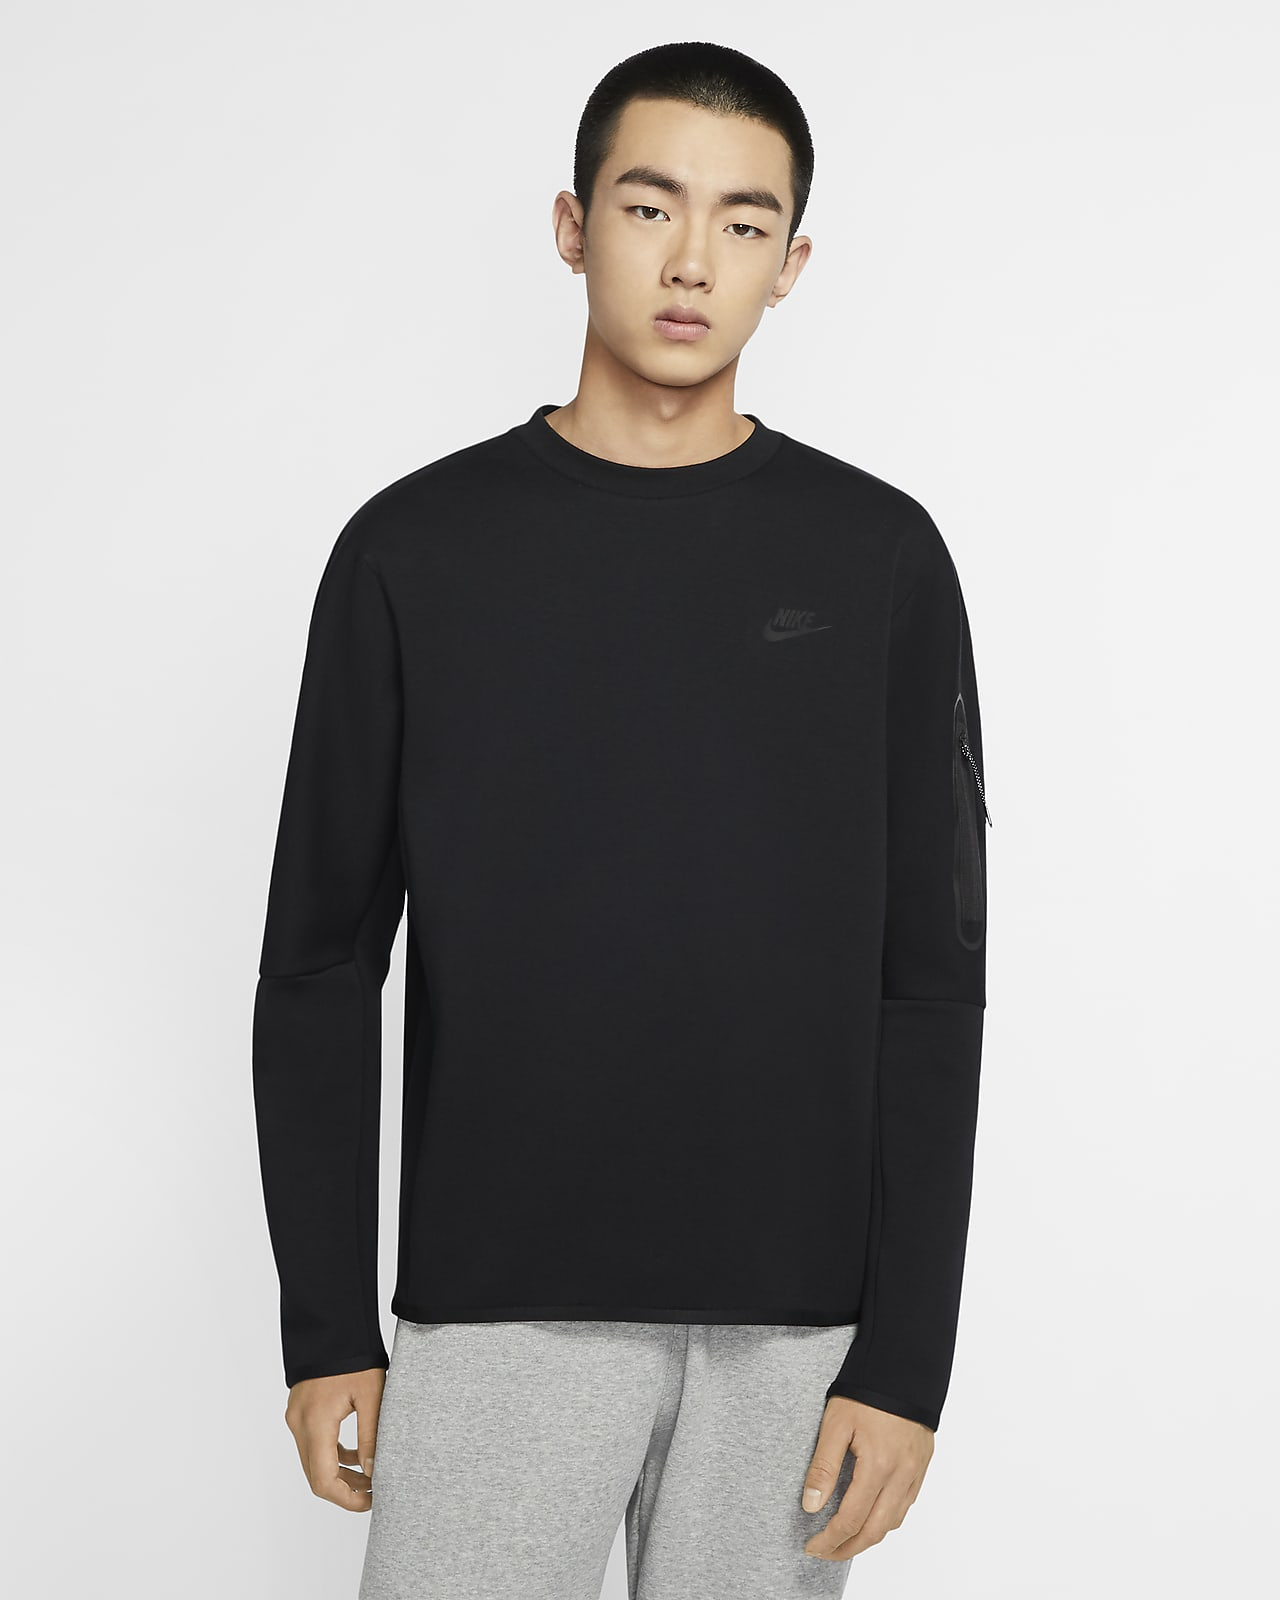 Nike Sportswear Tech Fleece 男款貼身圓領上衣